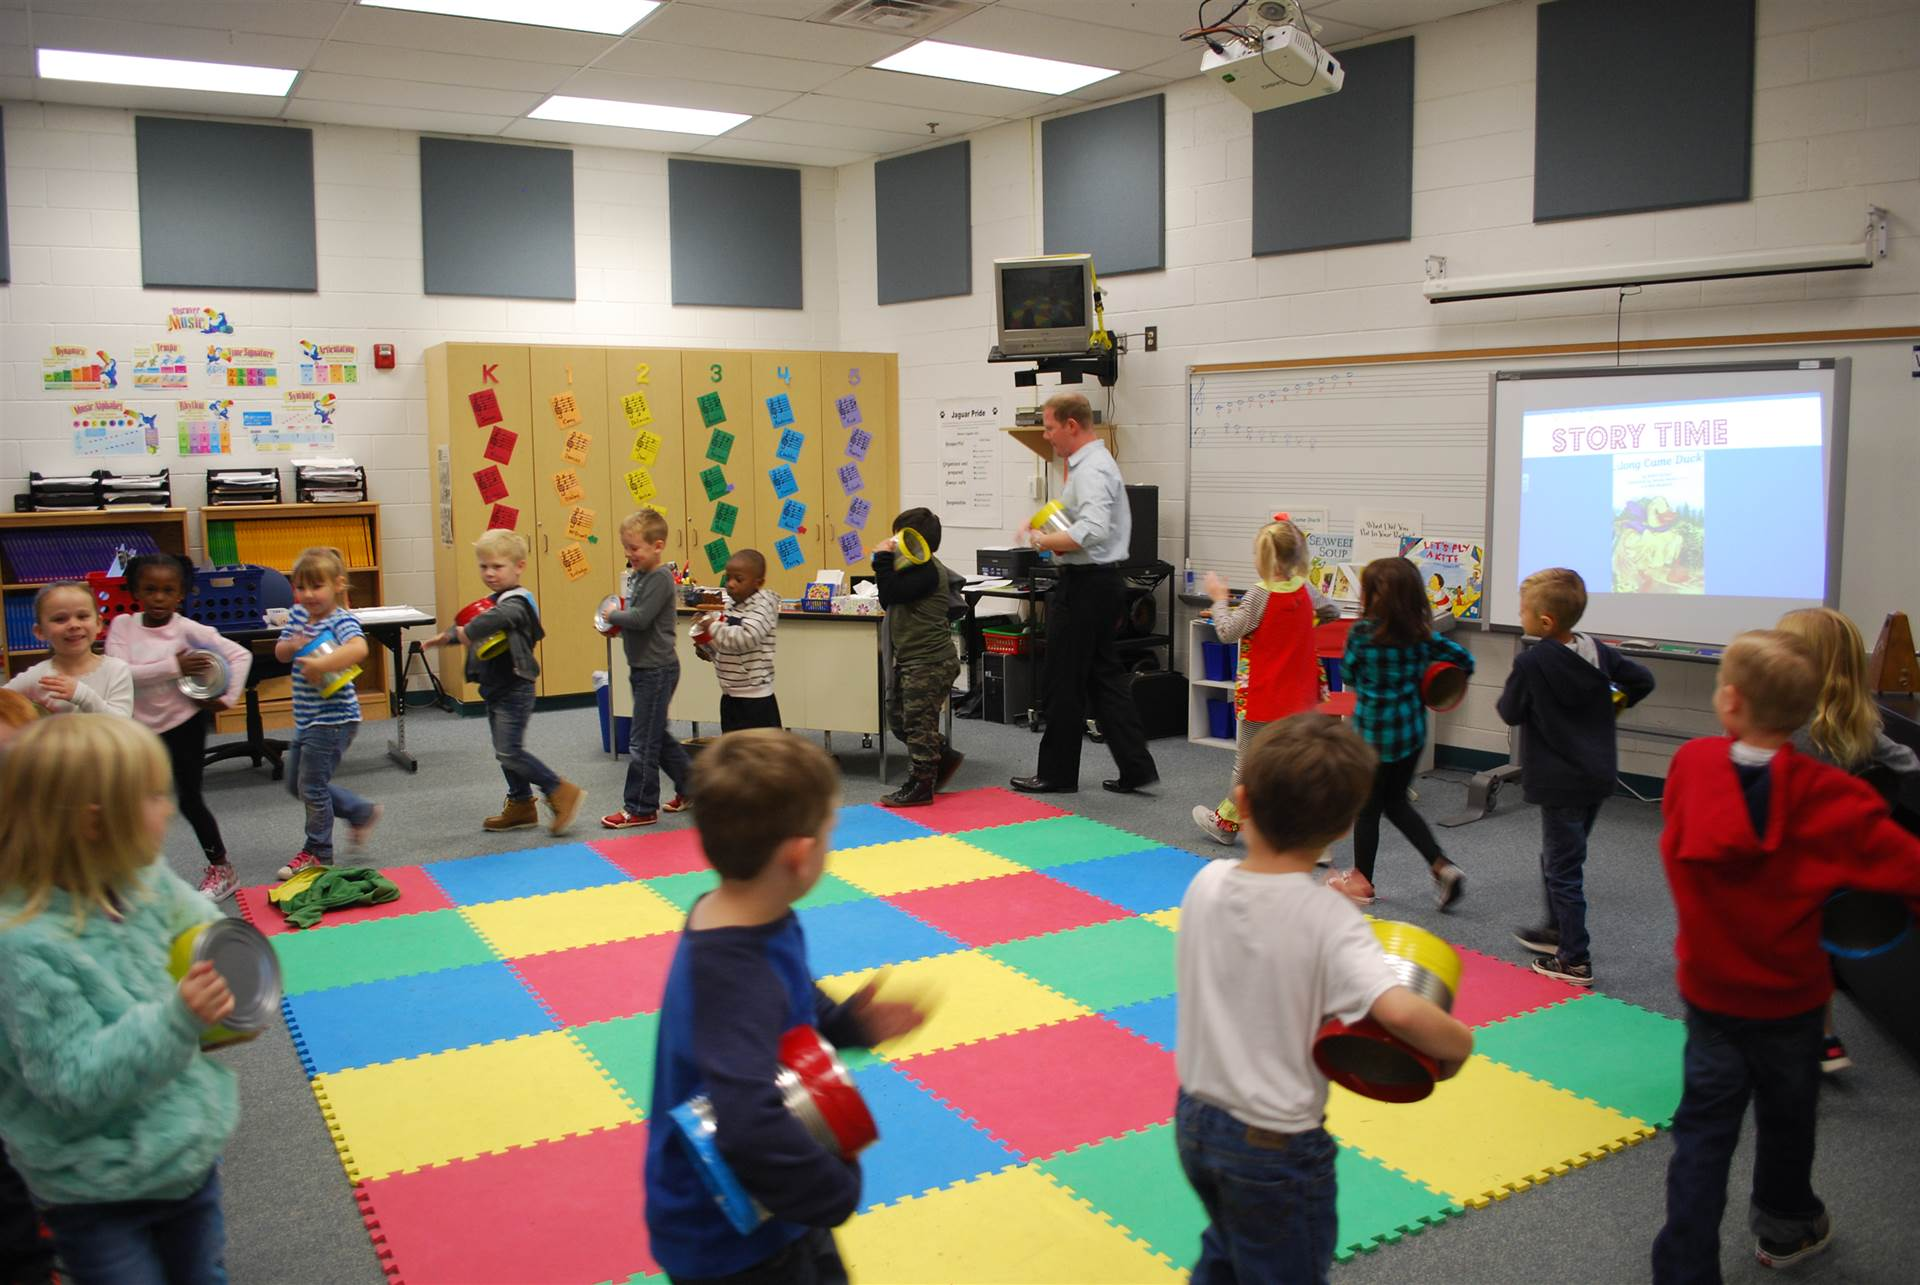 Students walking in a circle playing drums in art class.